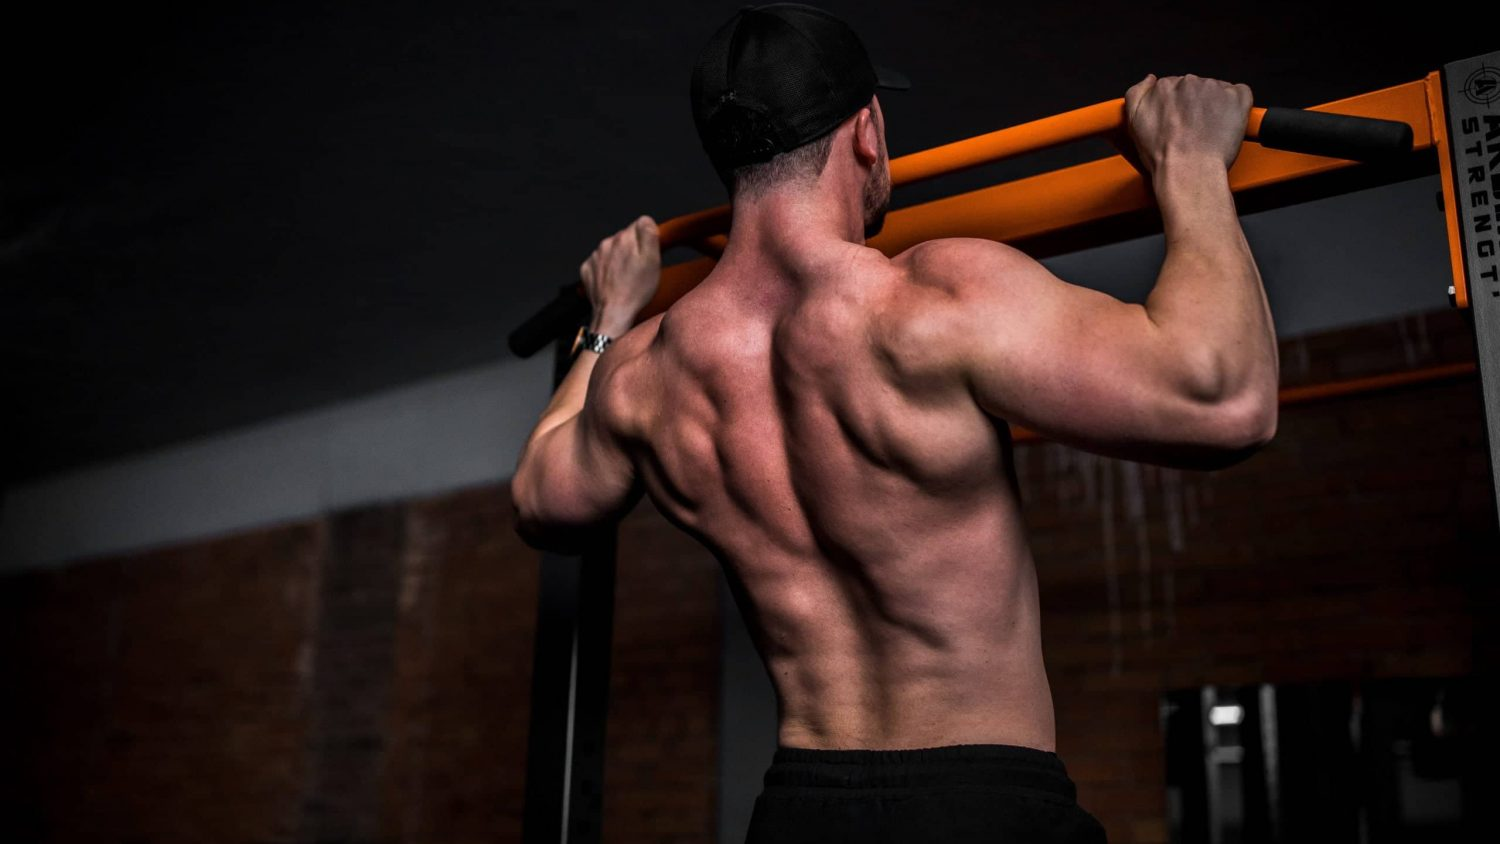 Your Guide to Finding the Best Pull Up Bar – Get Stronger the Right Way